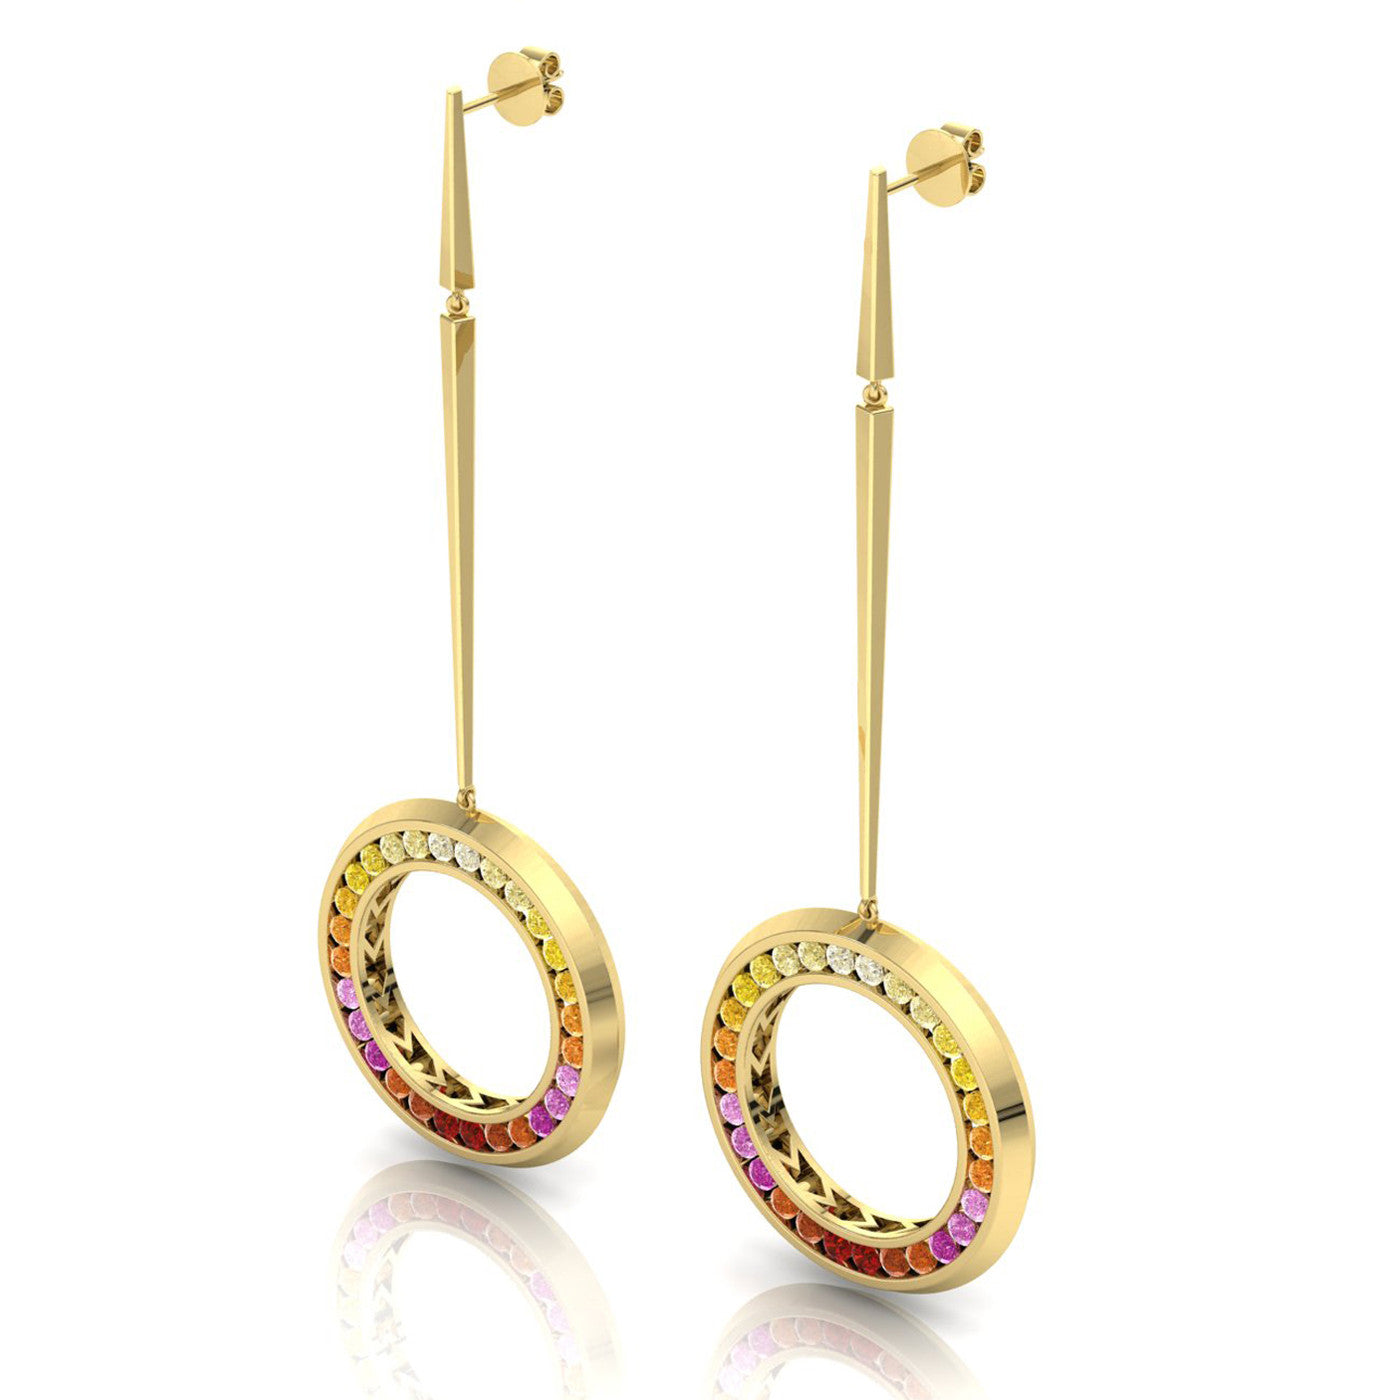 Herald Sunset Drop Earrings in 18kt yellow gold